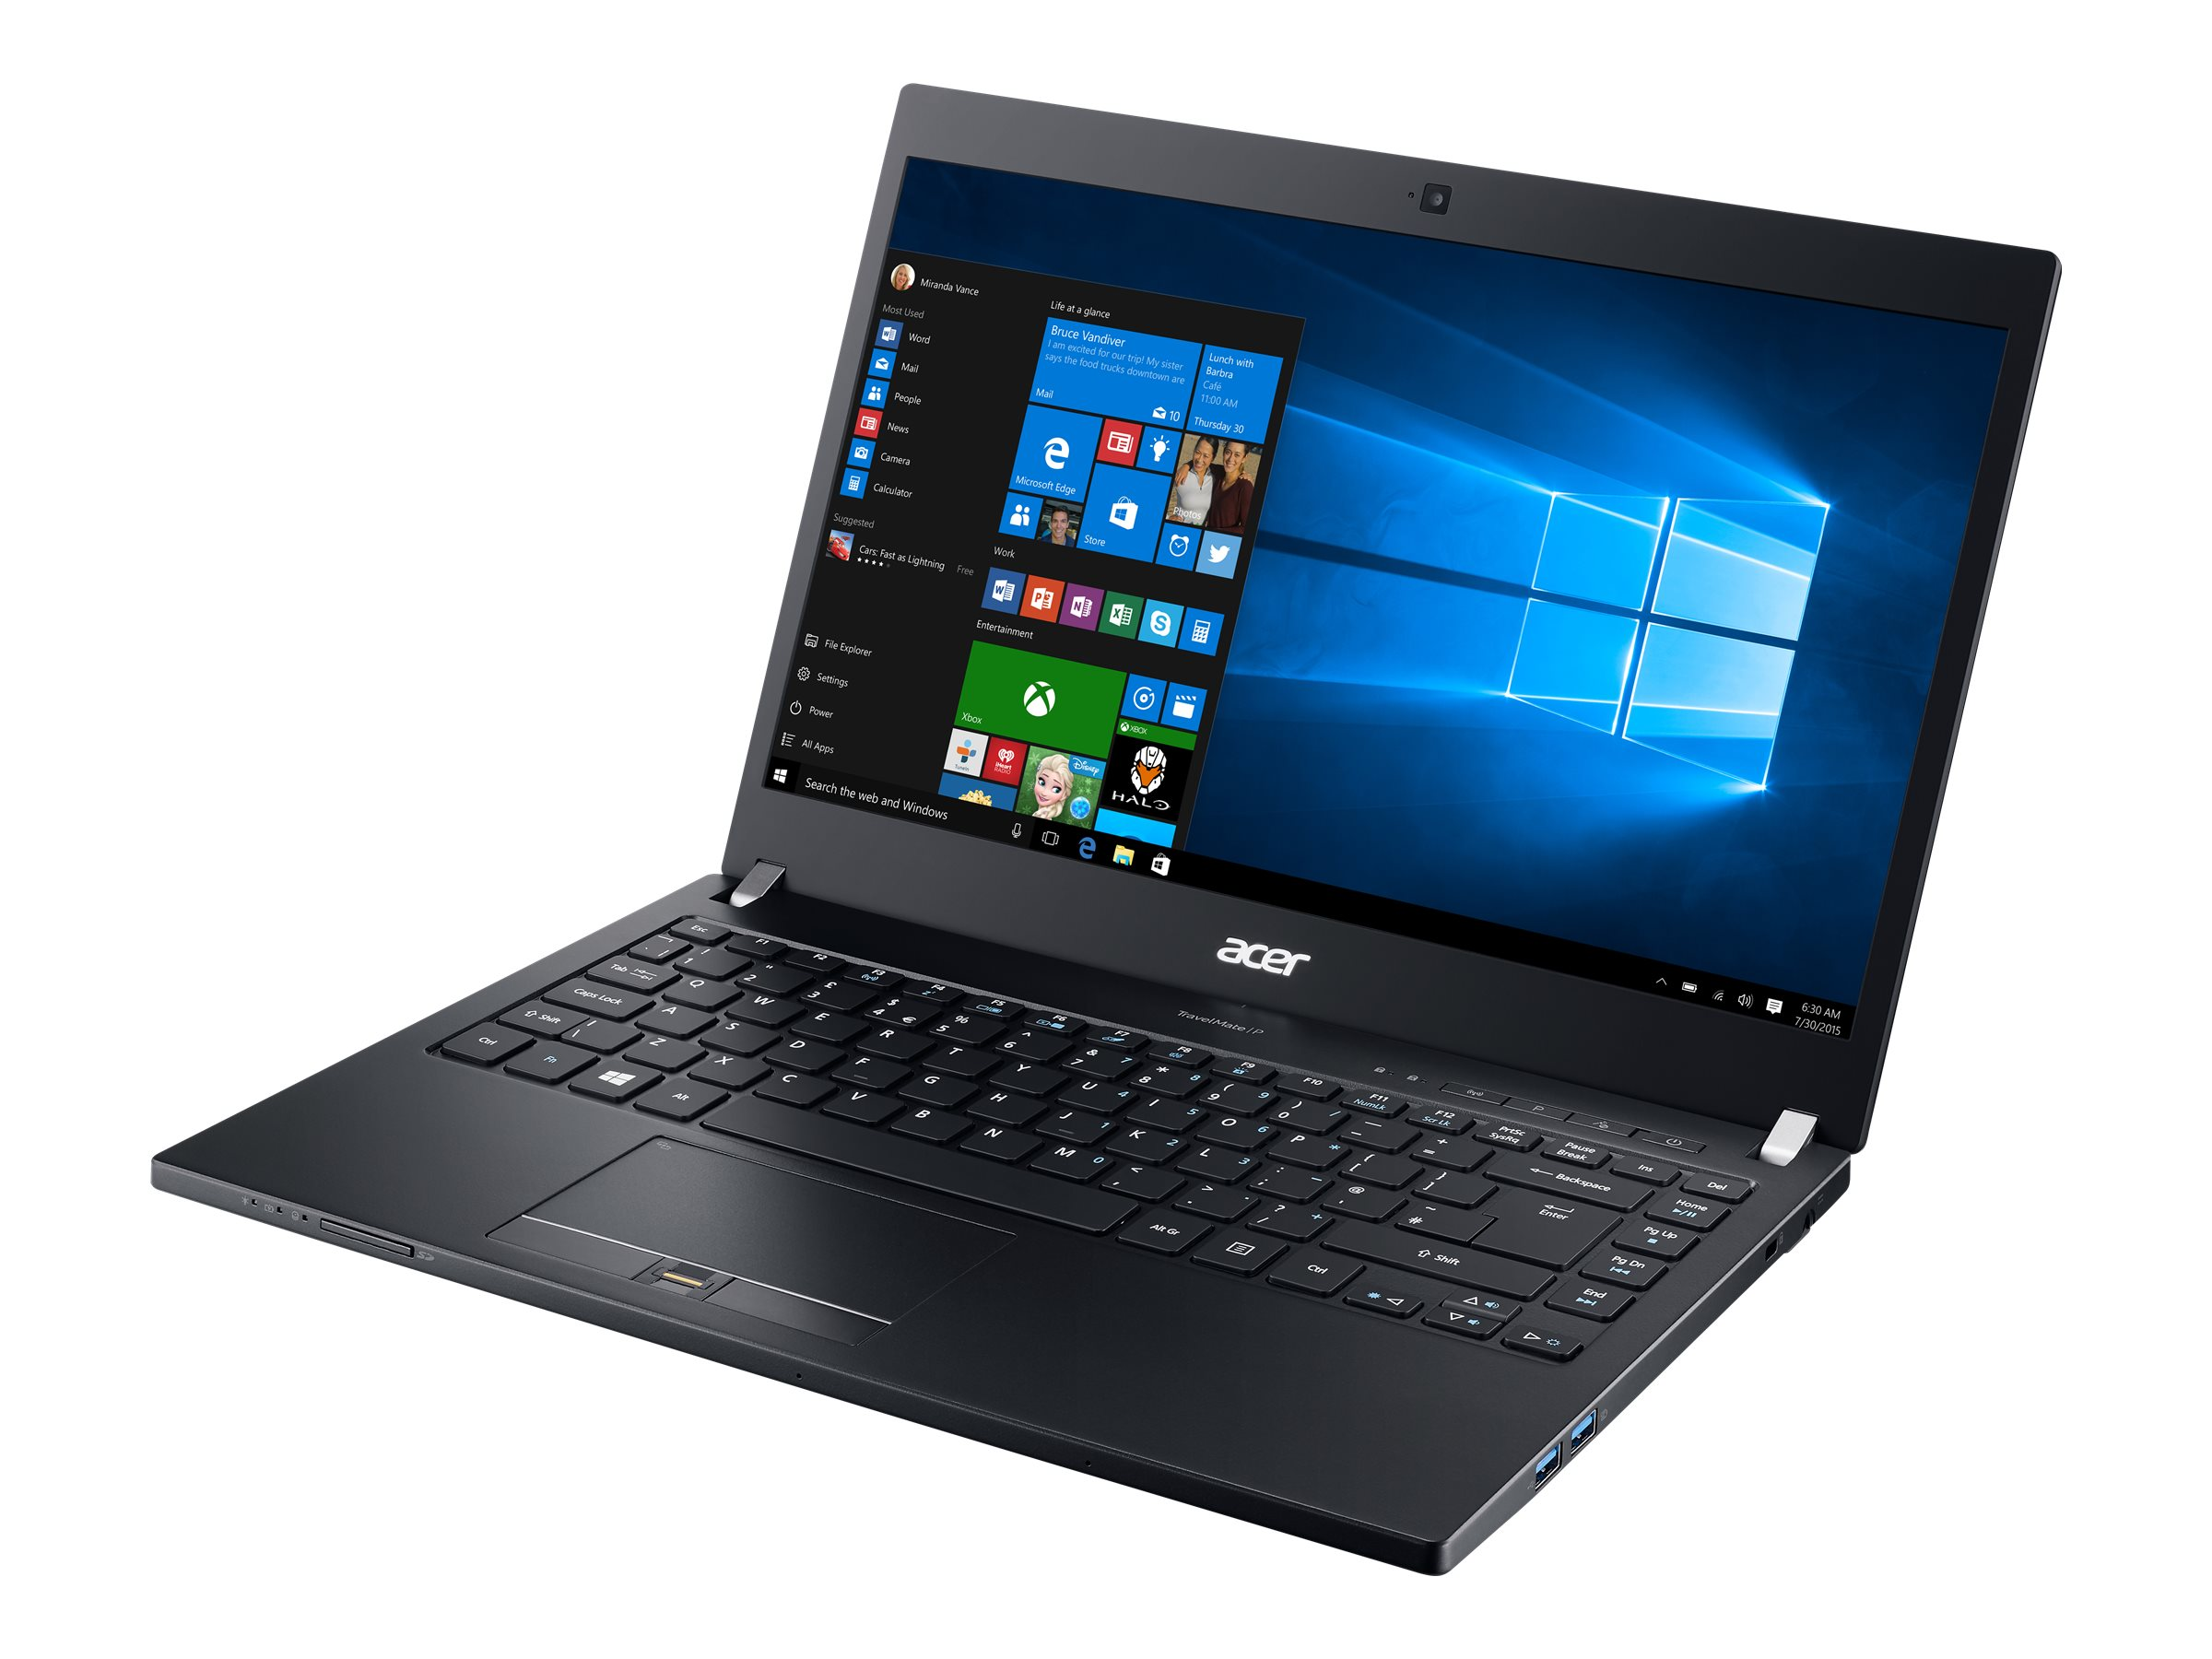 Acer Travelmate P648-M-59Q7 2.4GHz Core i5 14in display